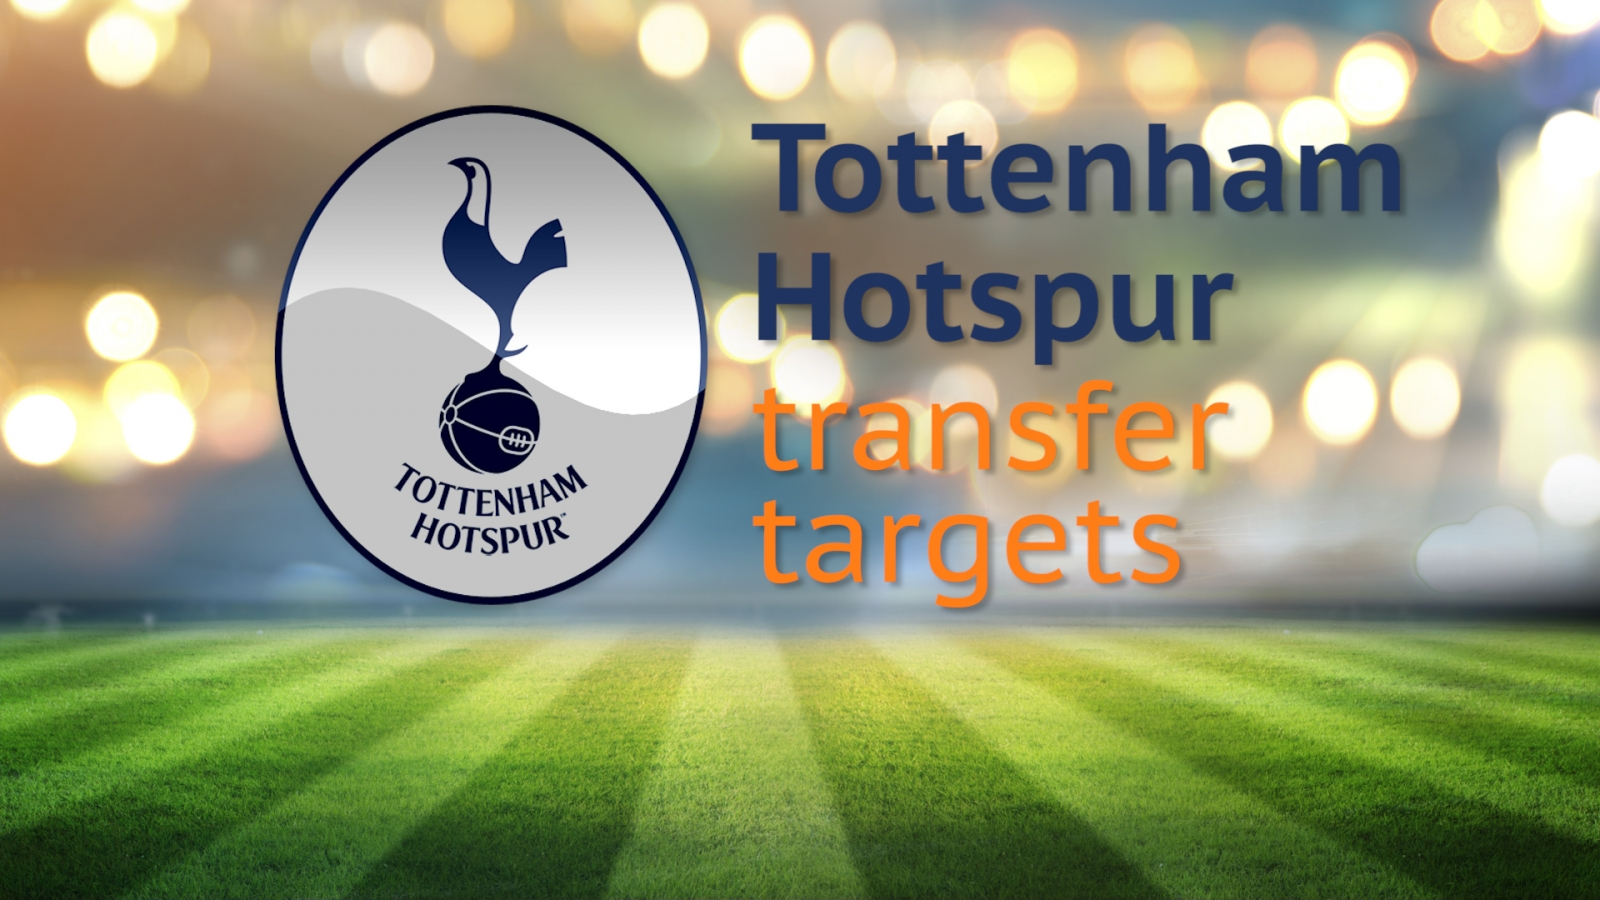 Spurs transfer targets